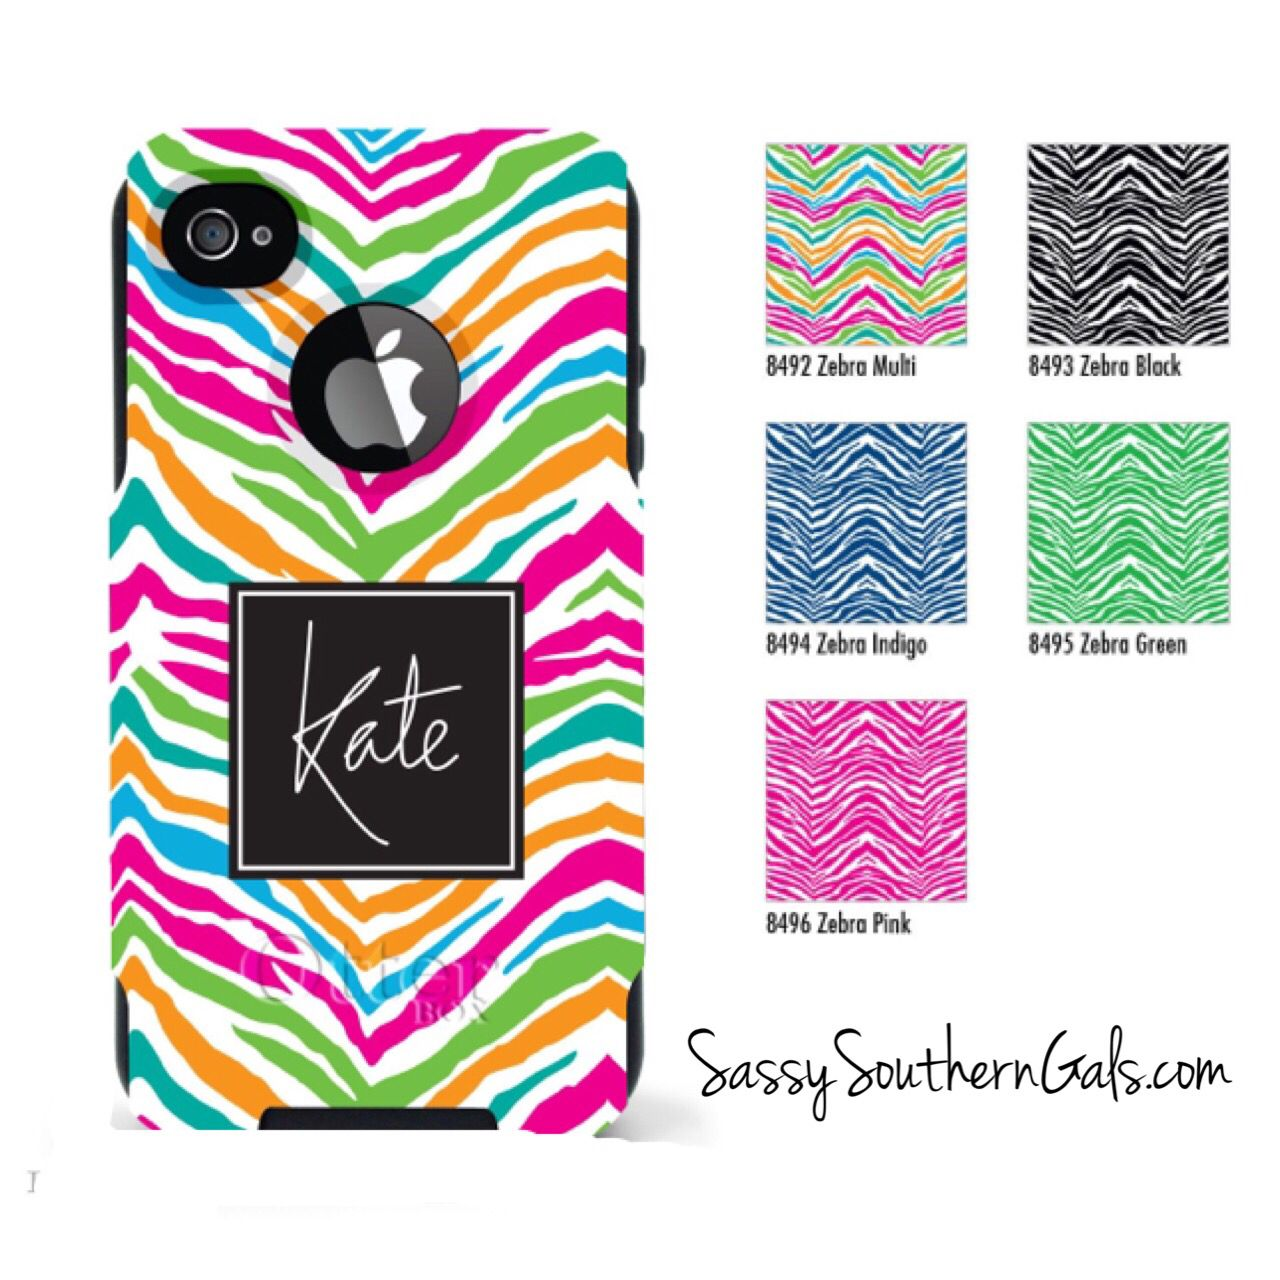 Monogrammed Otterbox for iPhone 6 on www.SassySouthernGals.com - Monogrammed Gifts & Accessories